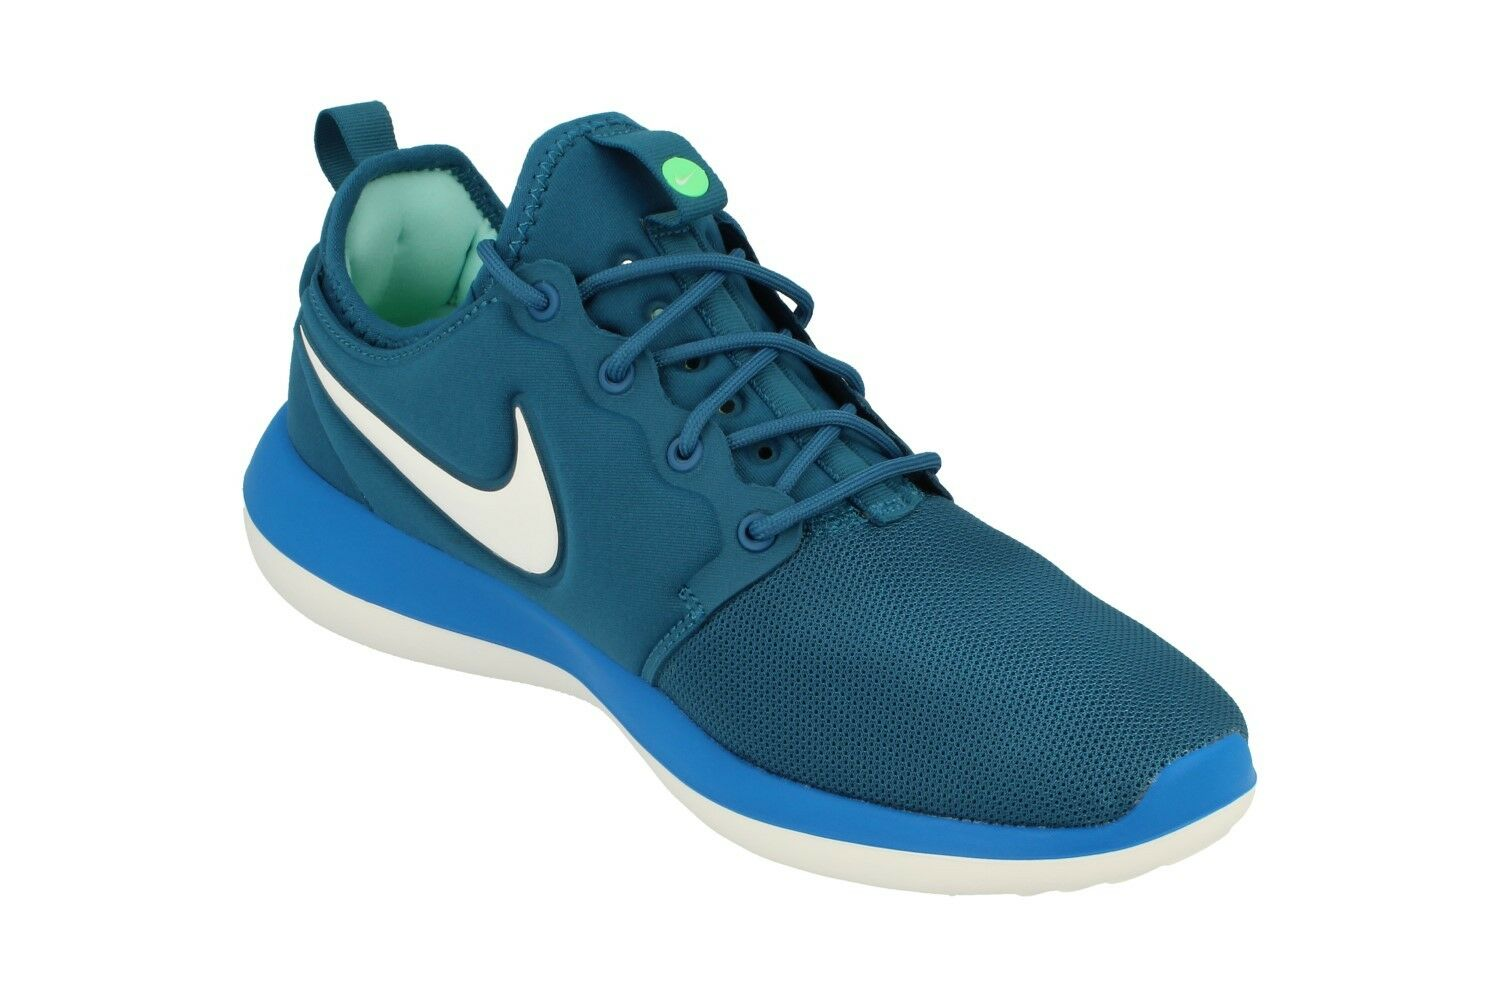 Nike Trainers Roshe Two homme fonctionnement Trainers Nike 844656 Baskets chaussures 402 a49985